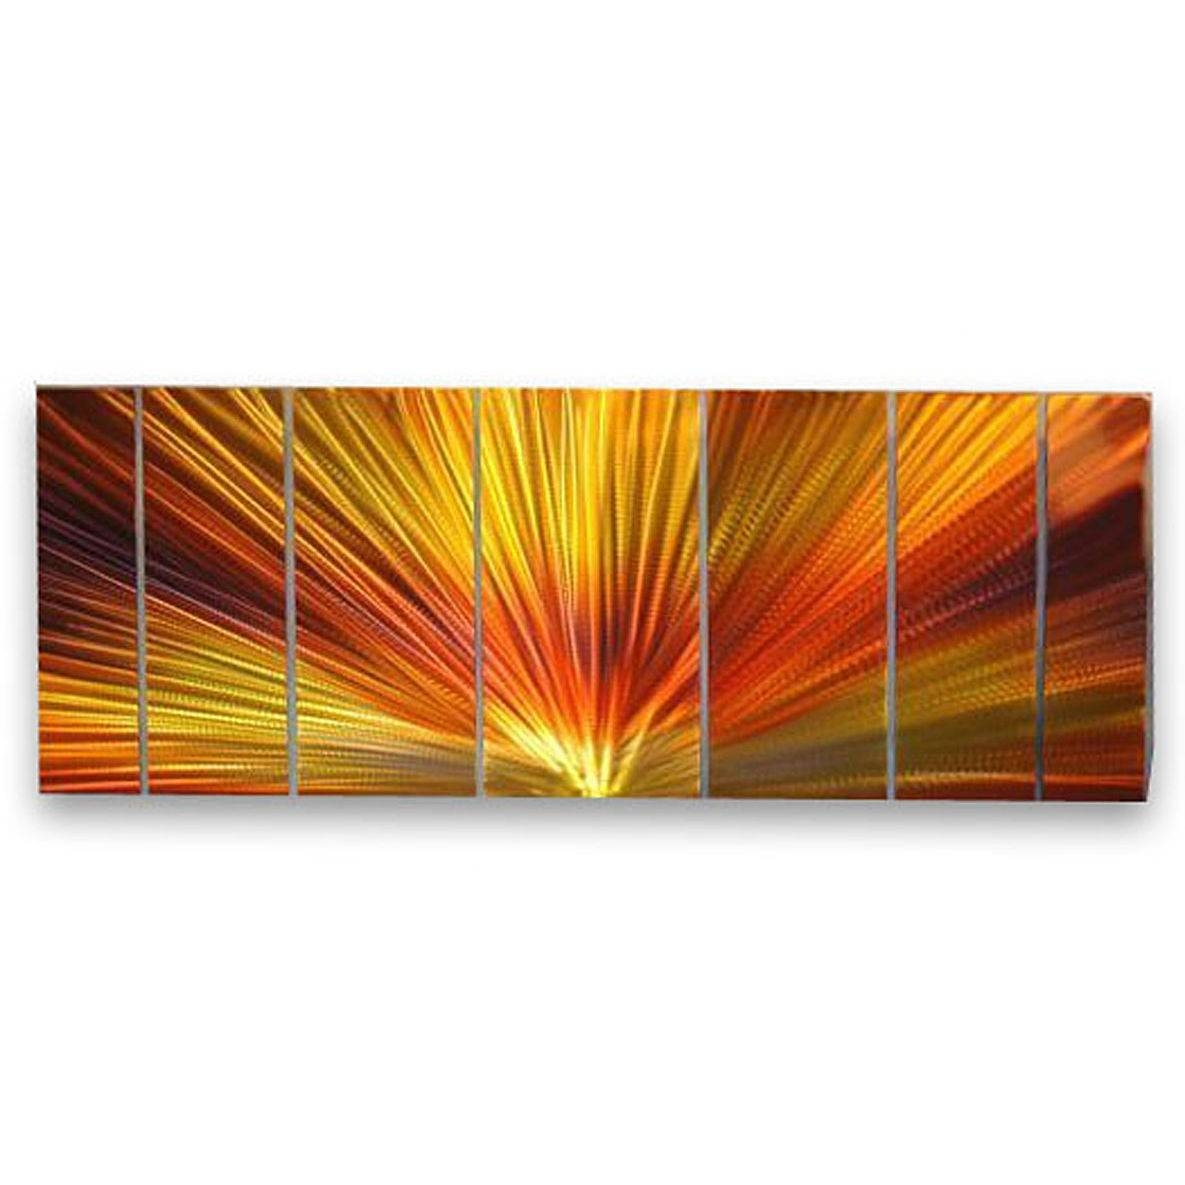 Amazing Design Orange Wall Art Lovely Ideas All My Walls Abstract Within Latest Ash Carl Metal Art (View 2 of 30)